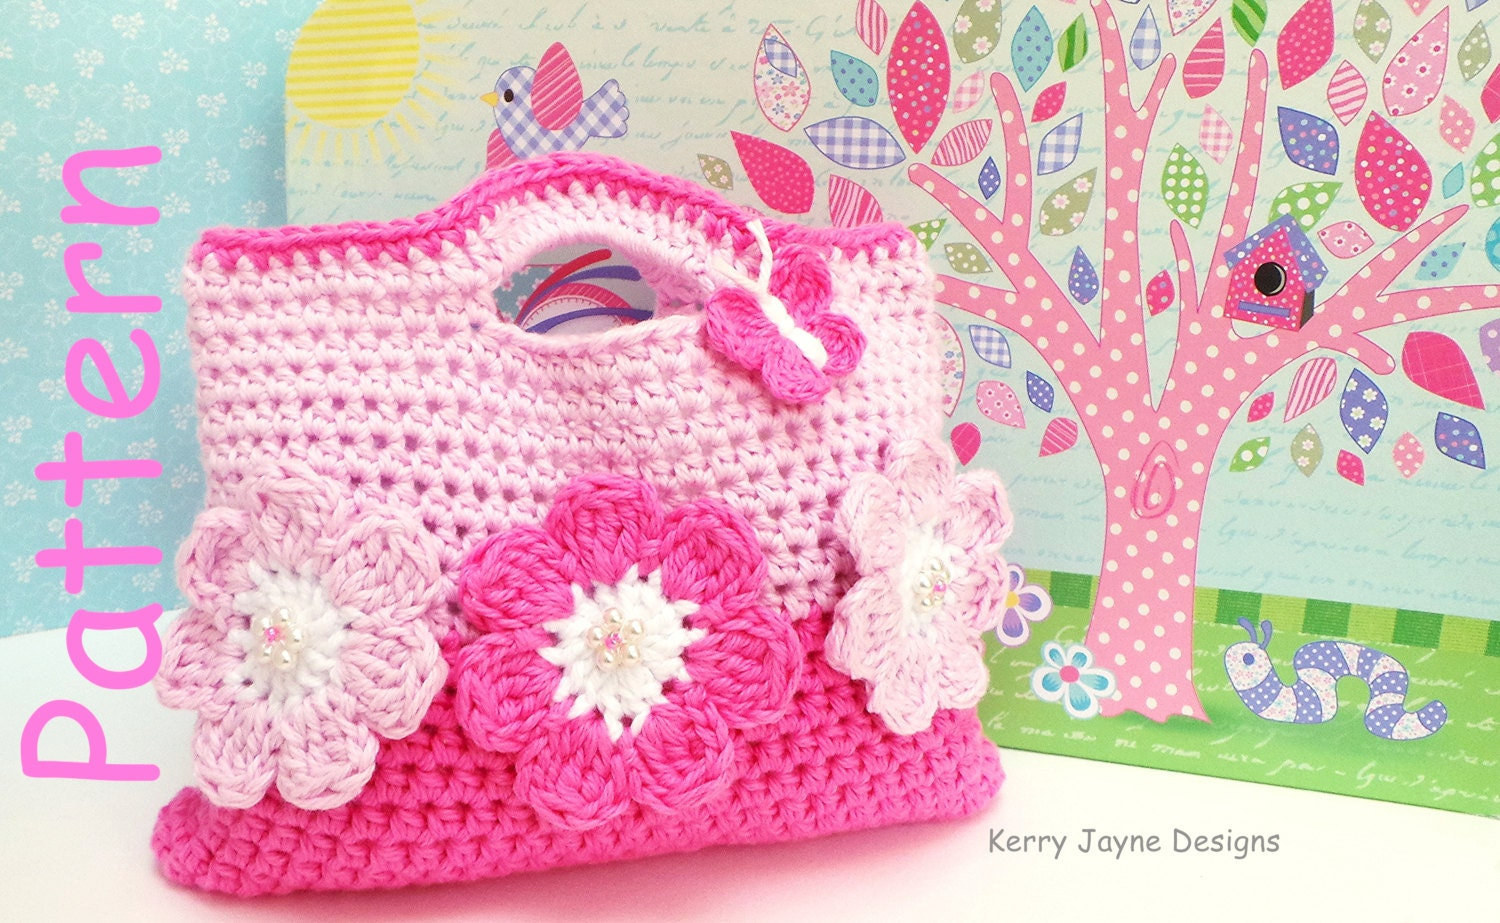 Crochet bag pattern by kerryjaynedesigns girls crochet bag the pink flower crochet bag pattern by kerry jayne designs girls bag pattern easter crochet pattern bankloansurffo Image collections